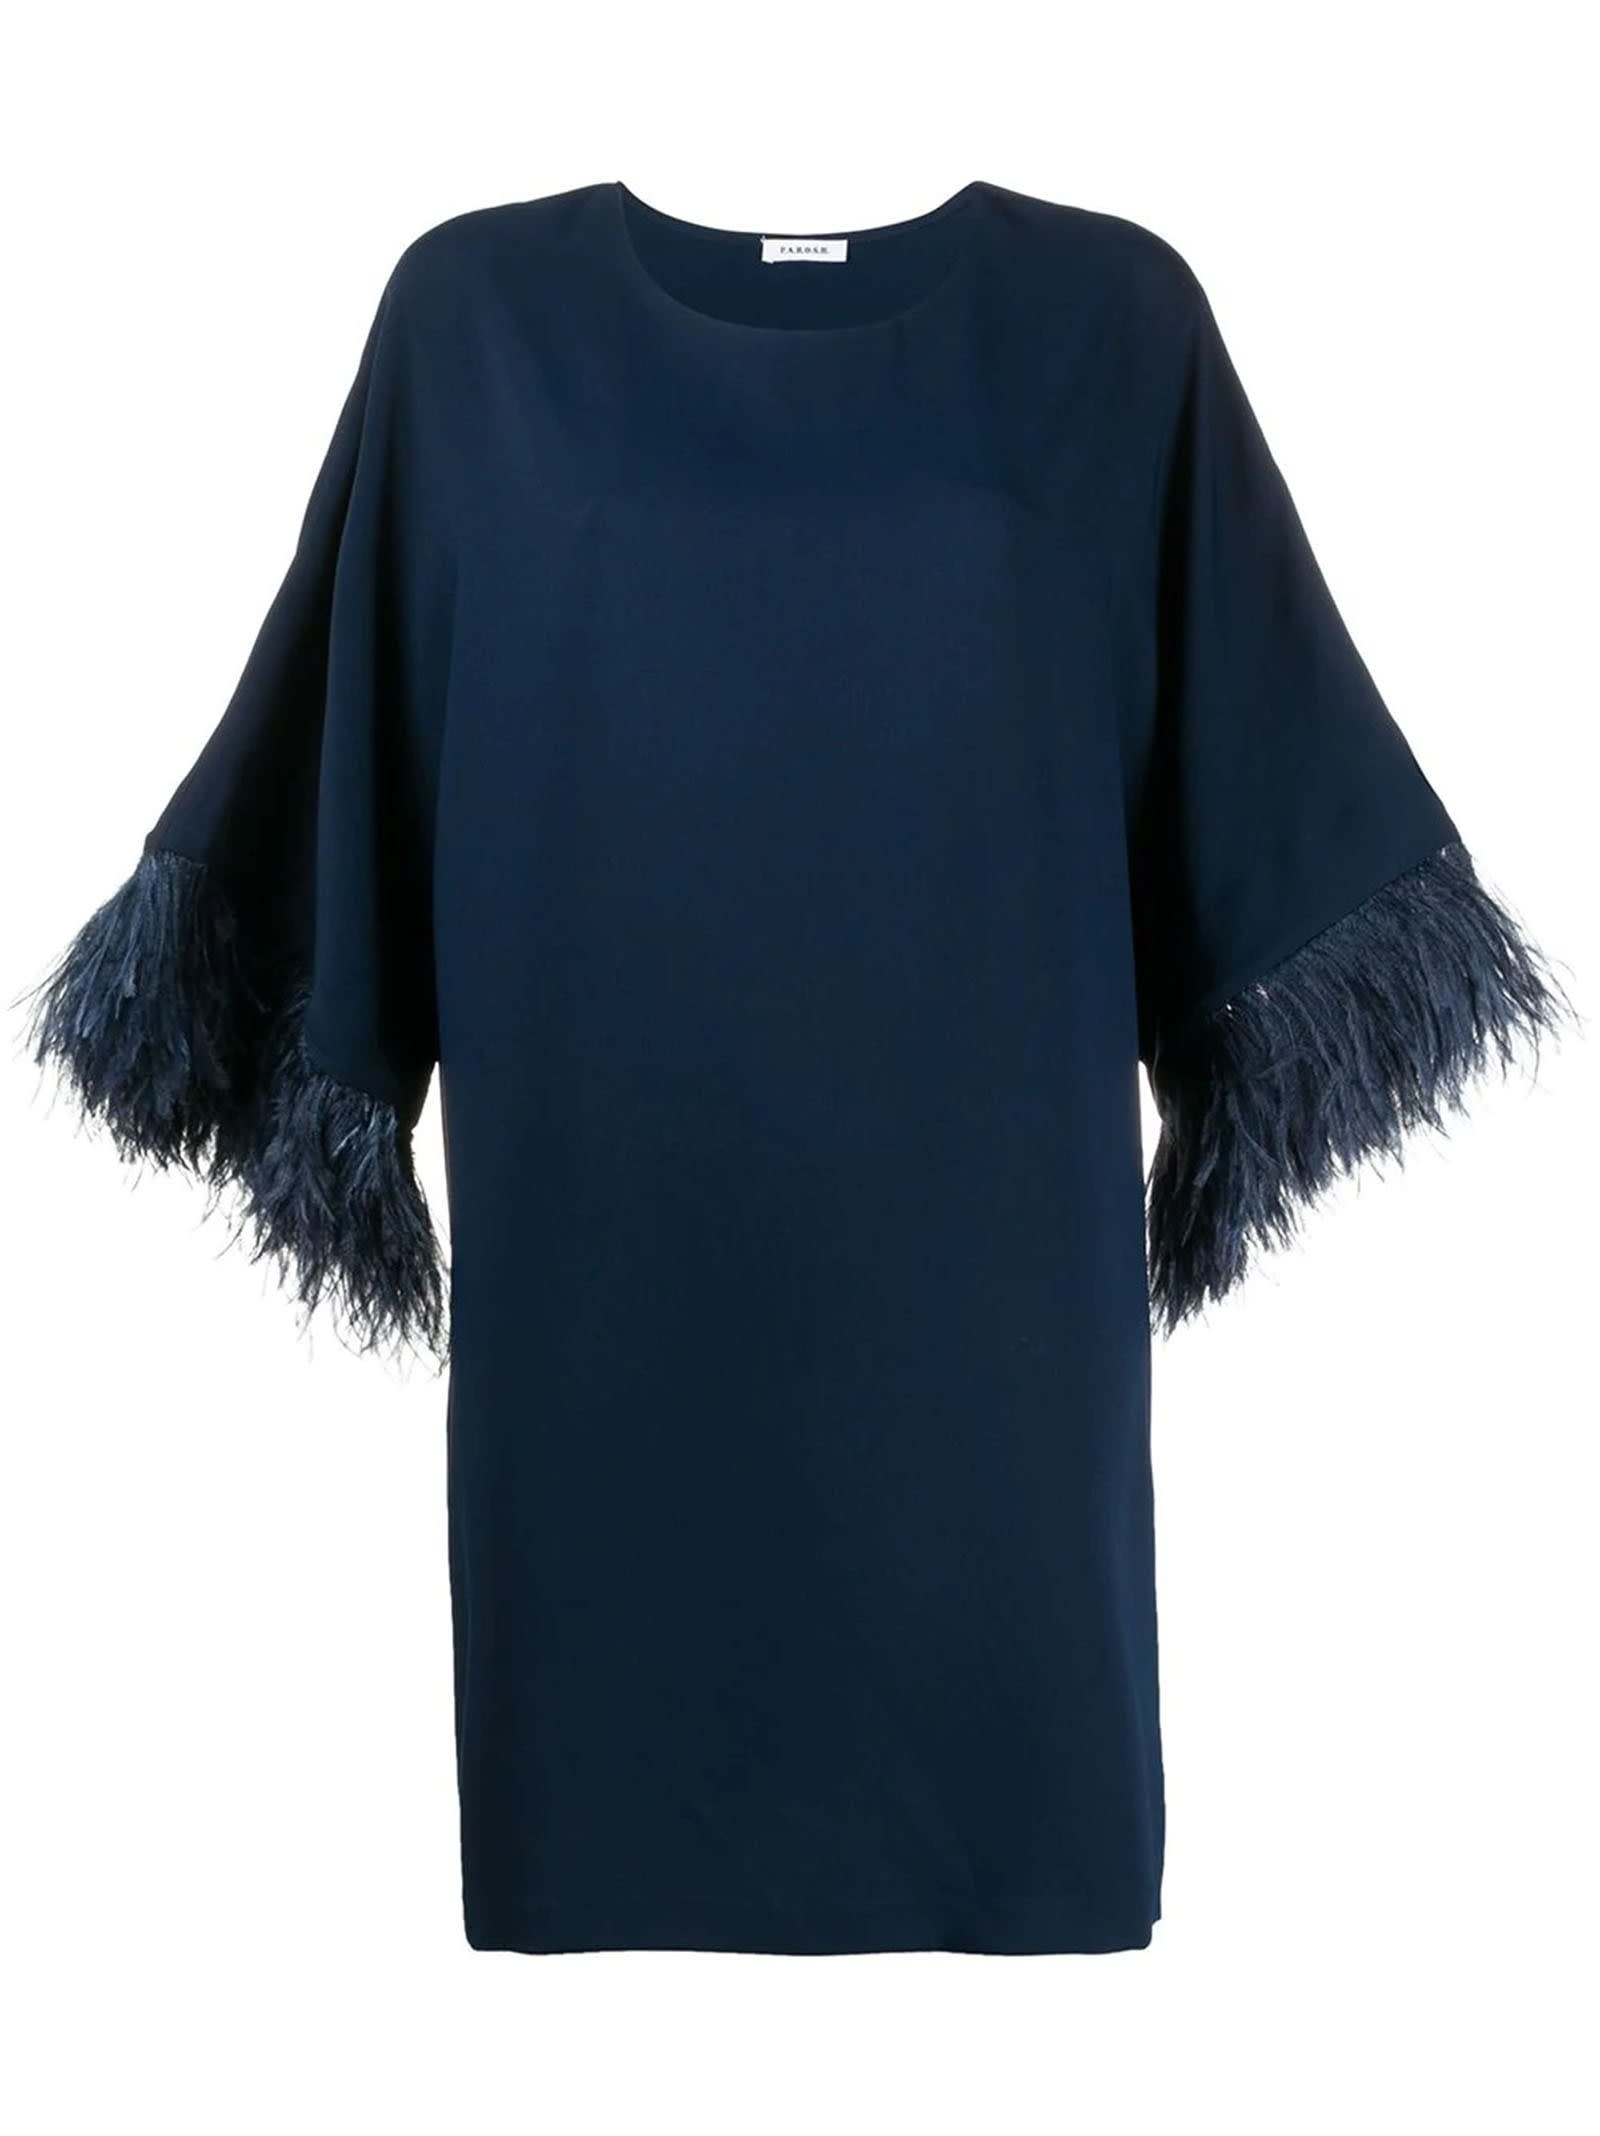 Buy Parosh Panters Blue Dress online, shop Parosh with free shipping